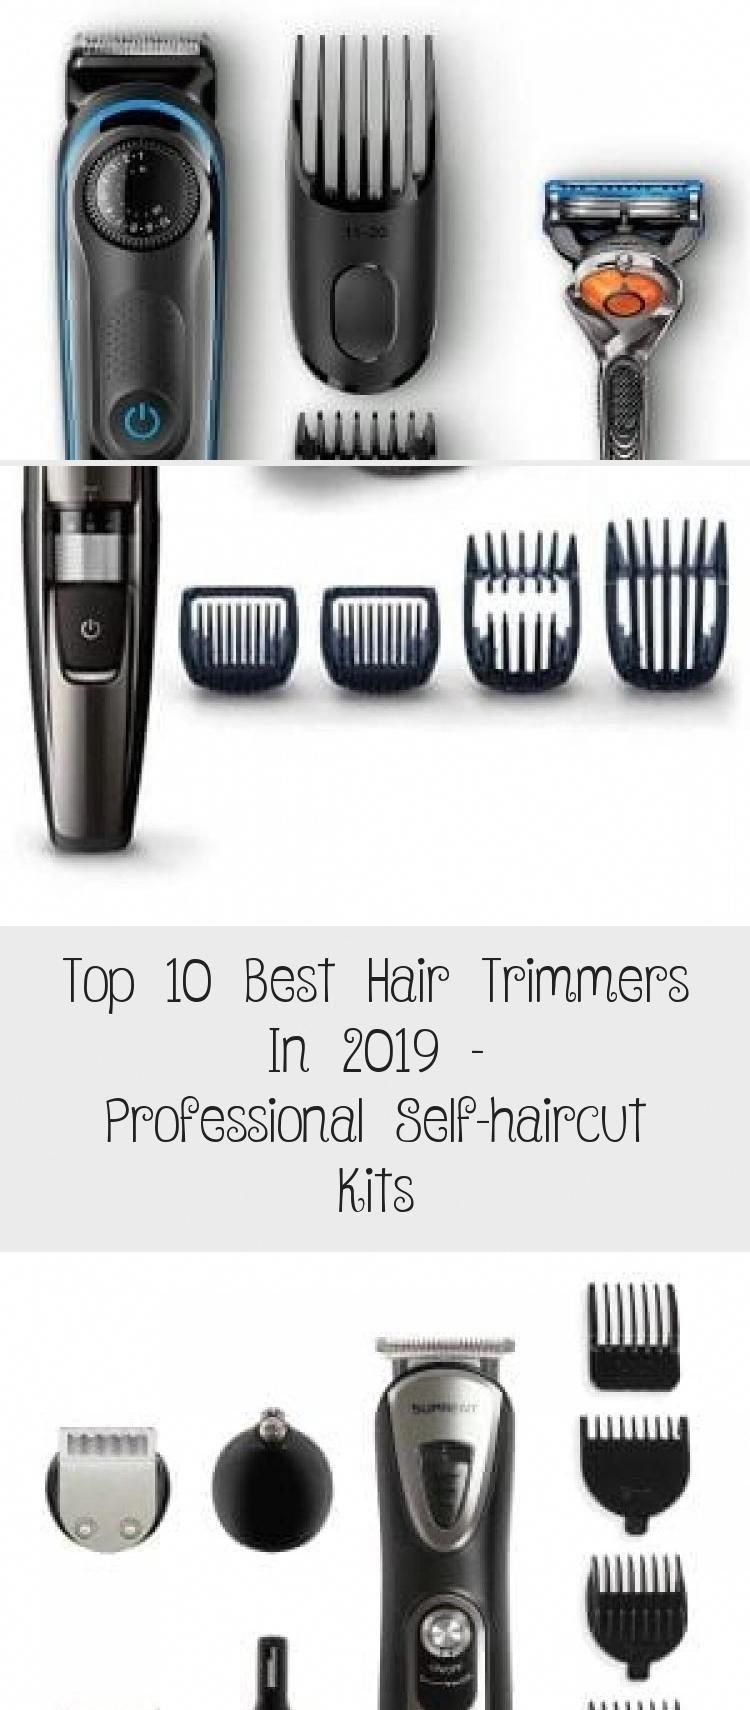 27 Remarkable Hair Clippers Philips Norelco In 2020 Hair Clippers Best Hair Trimmer Cool Hairstyles